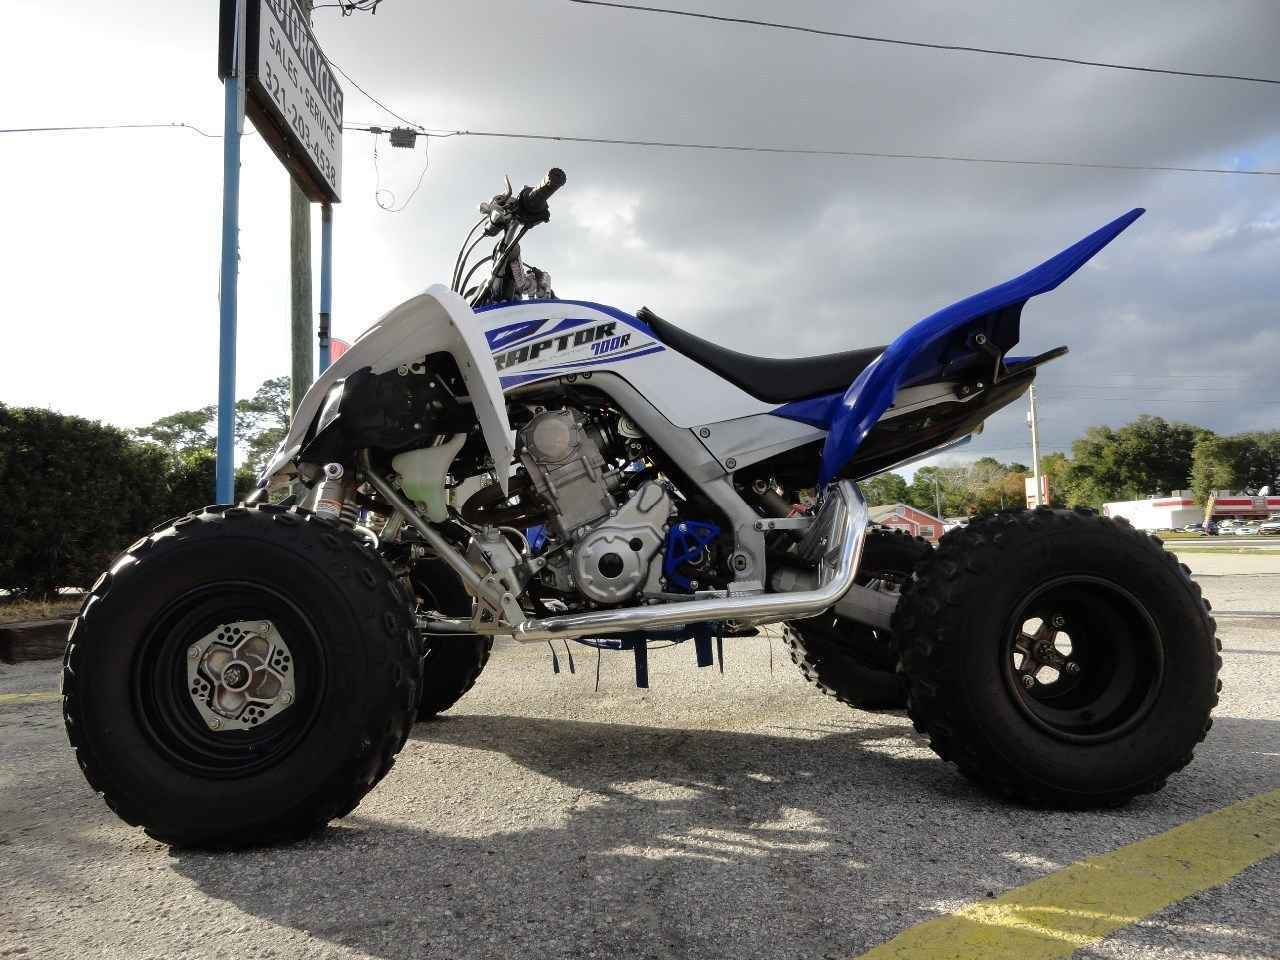 Used 2014 Yamaha RAPTOR 700R ATVs For Sale in Florida on ATV Trades